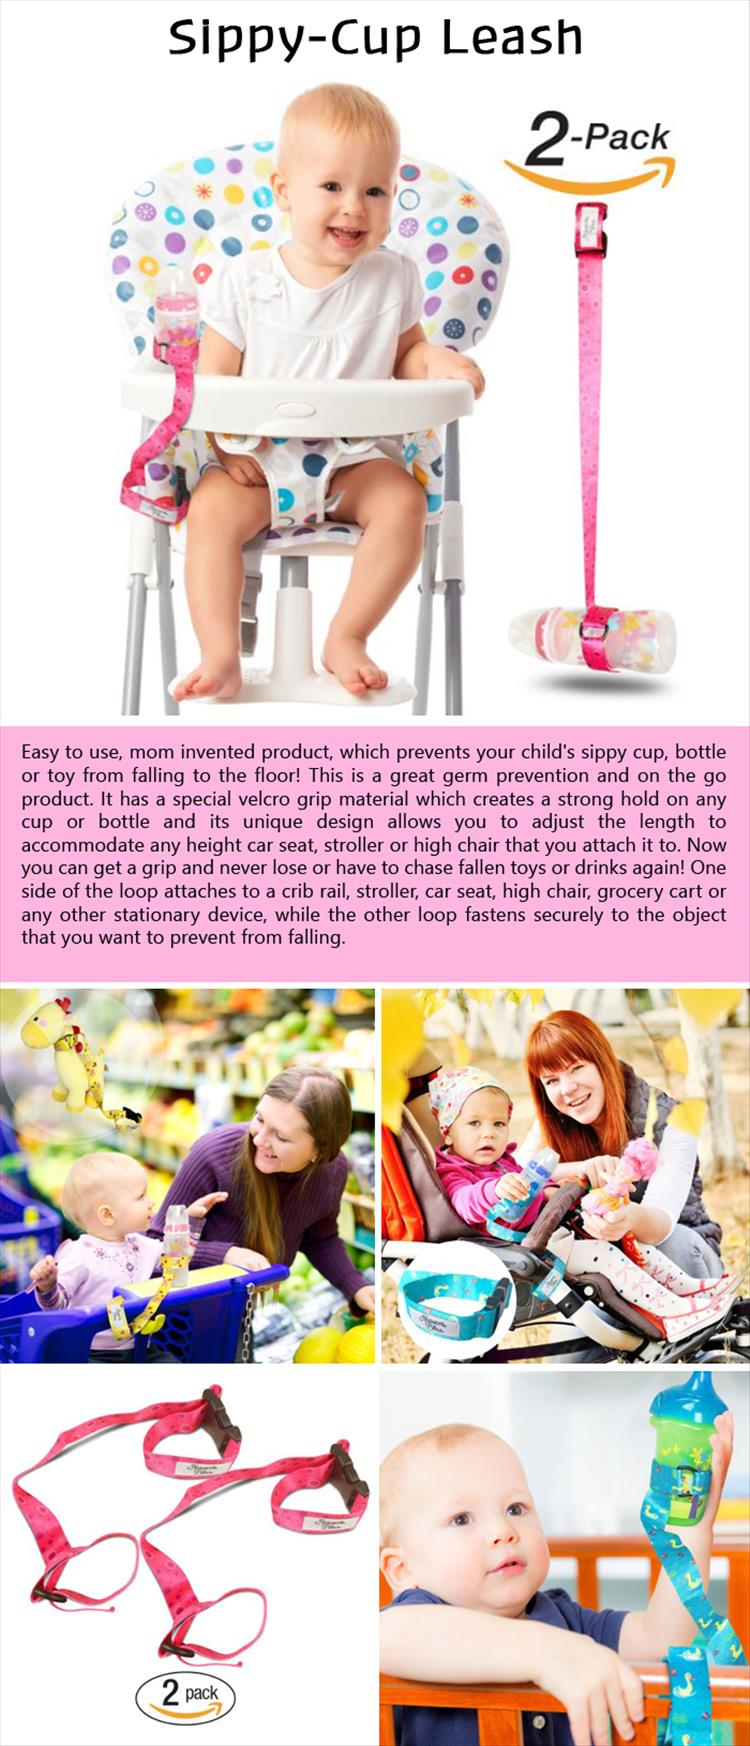 Sippy-Cup Leash